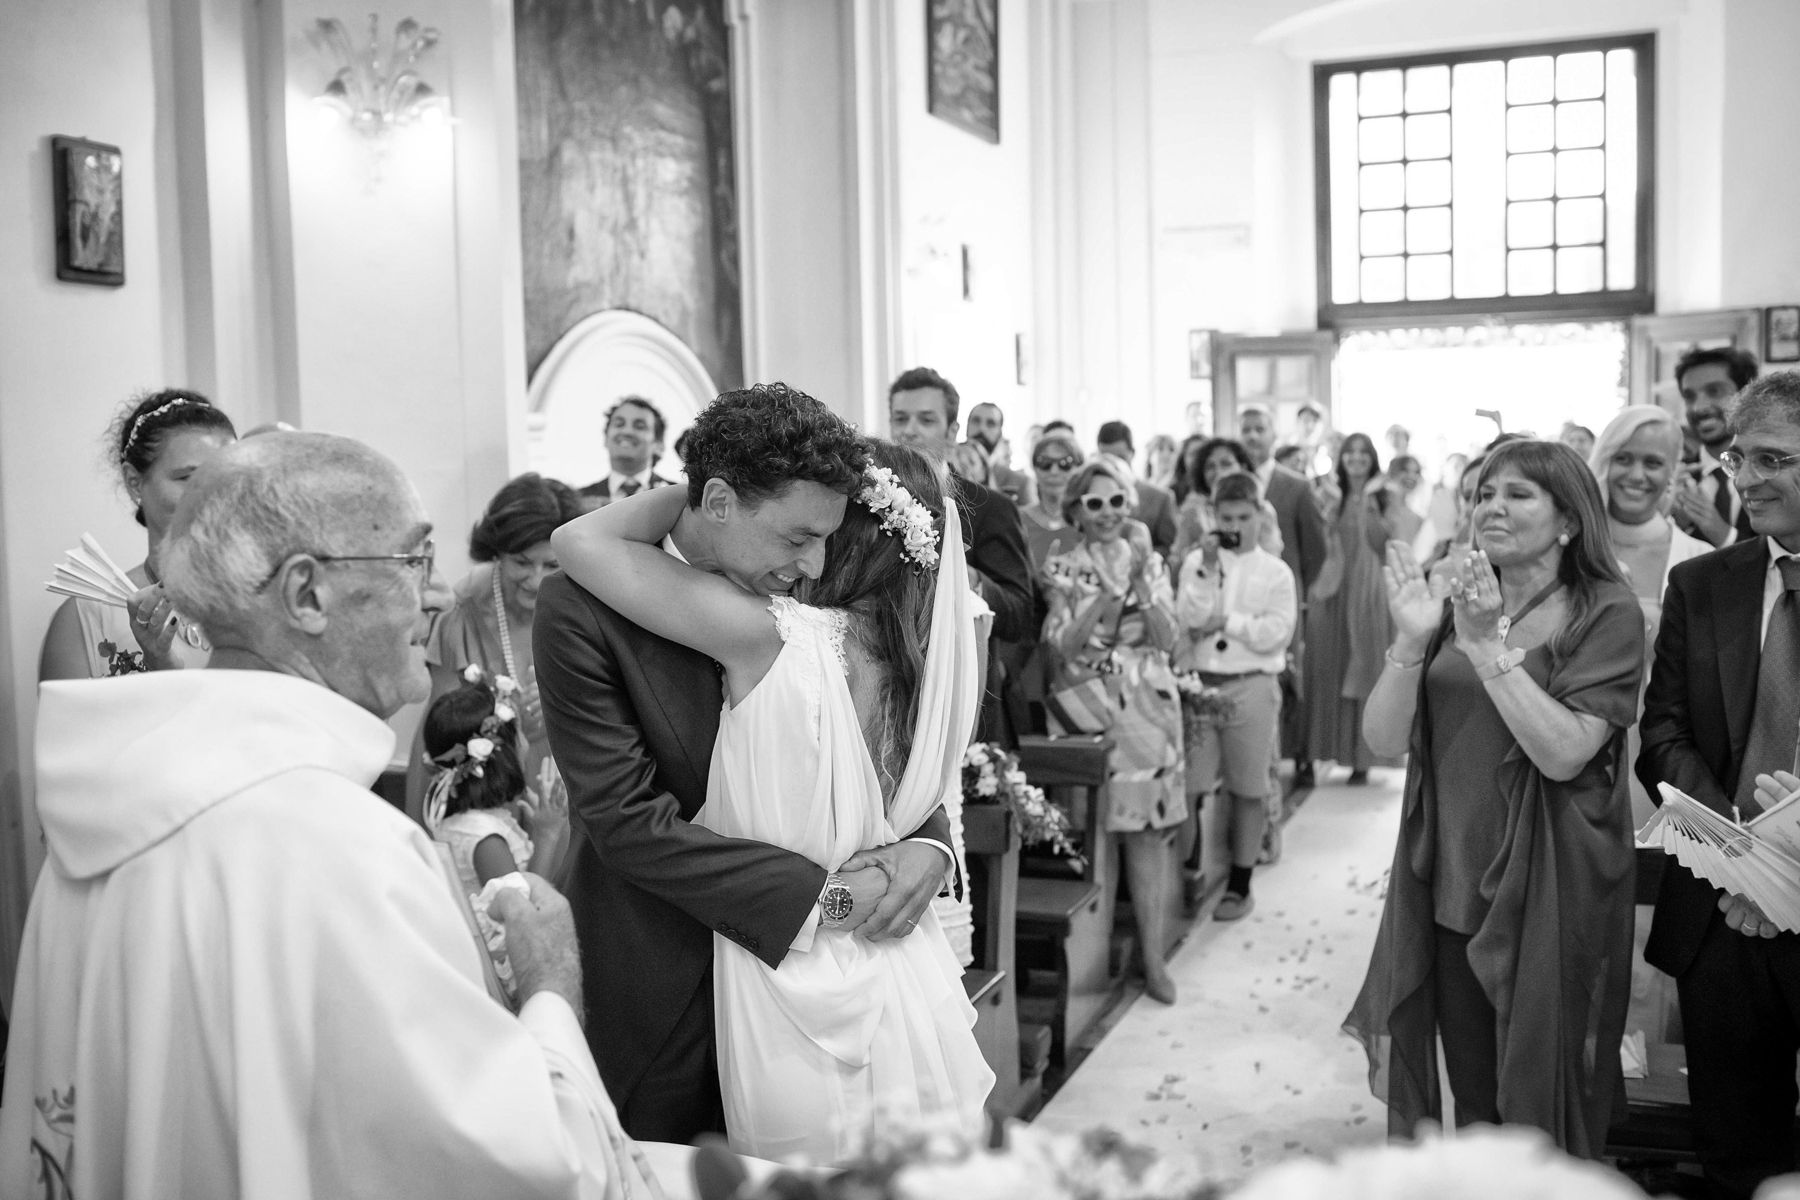 0150-_MG_9105-Modificafotografo-matrimonio-napoli-scattidamore